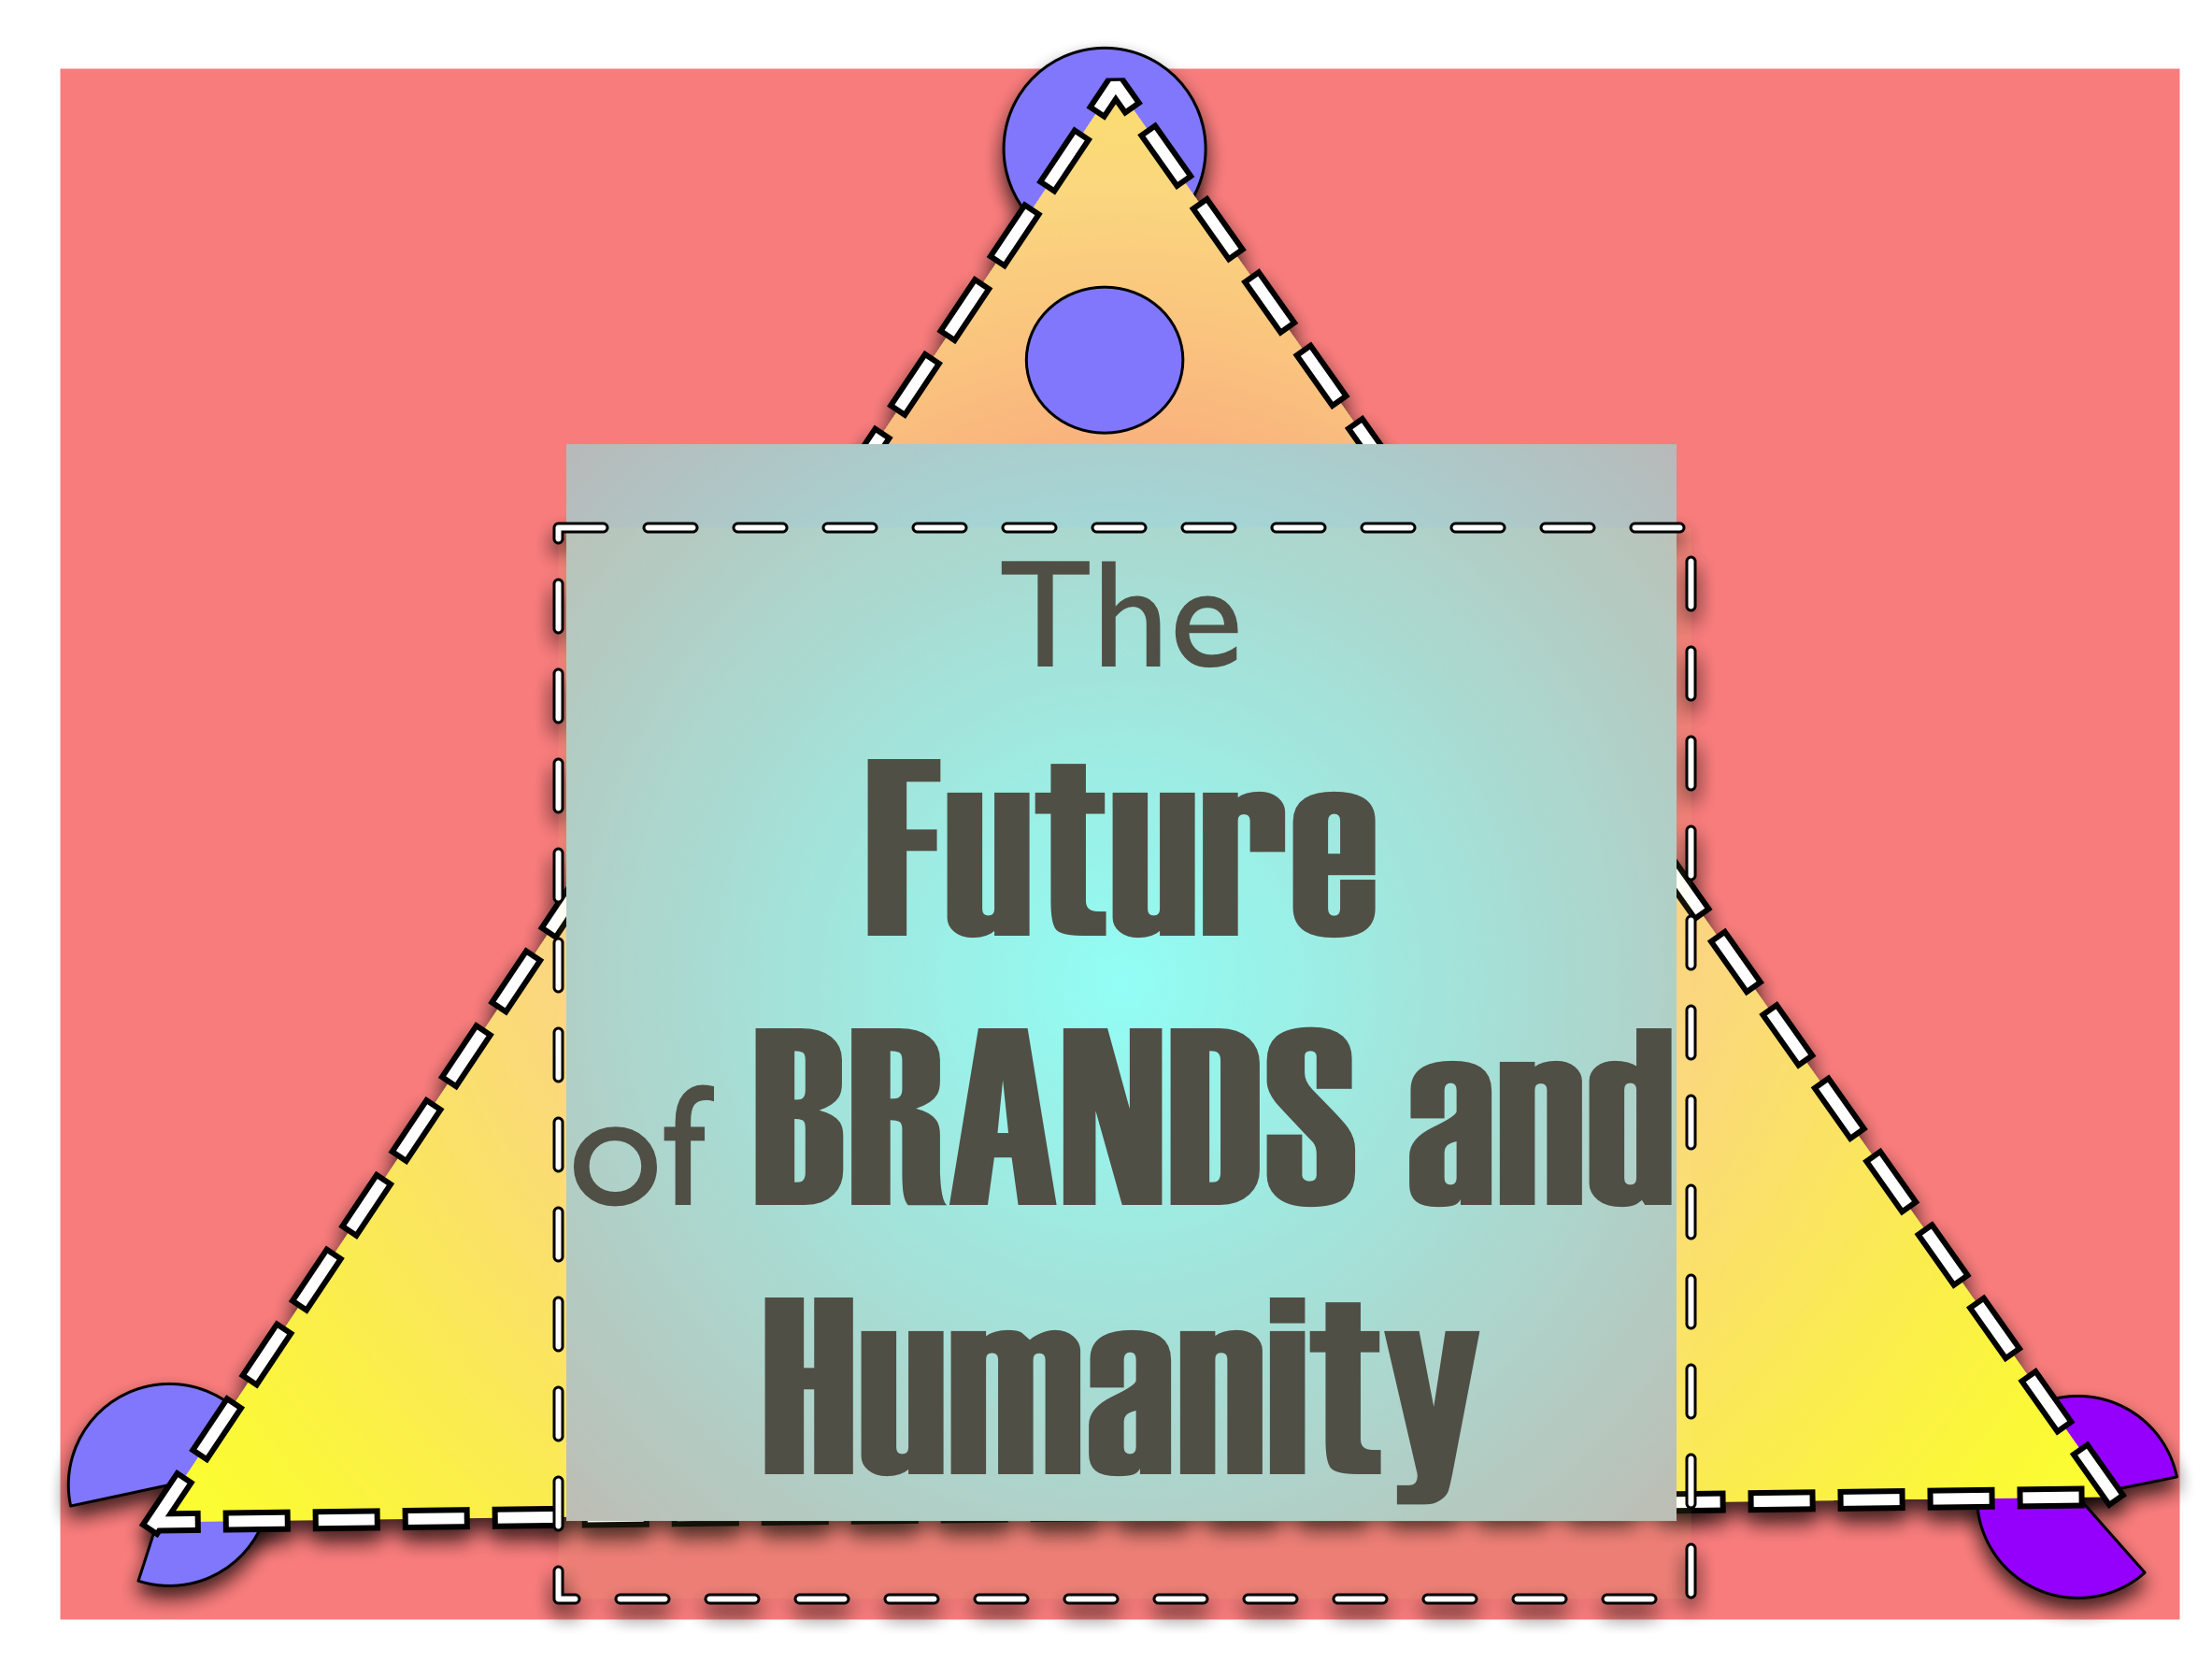 The Future of Brands and Humanity_2